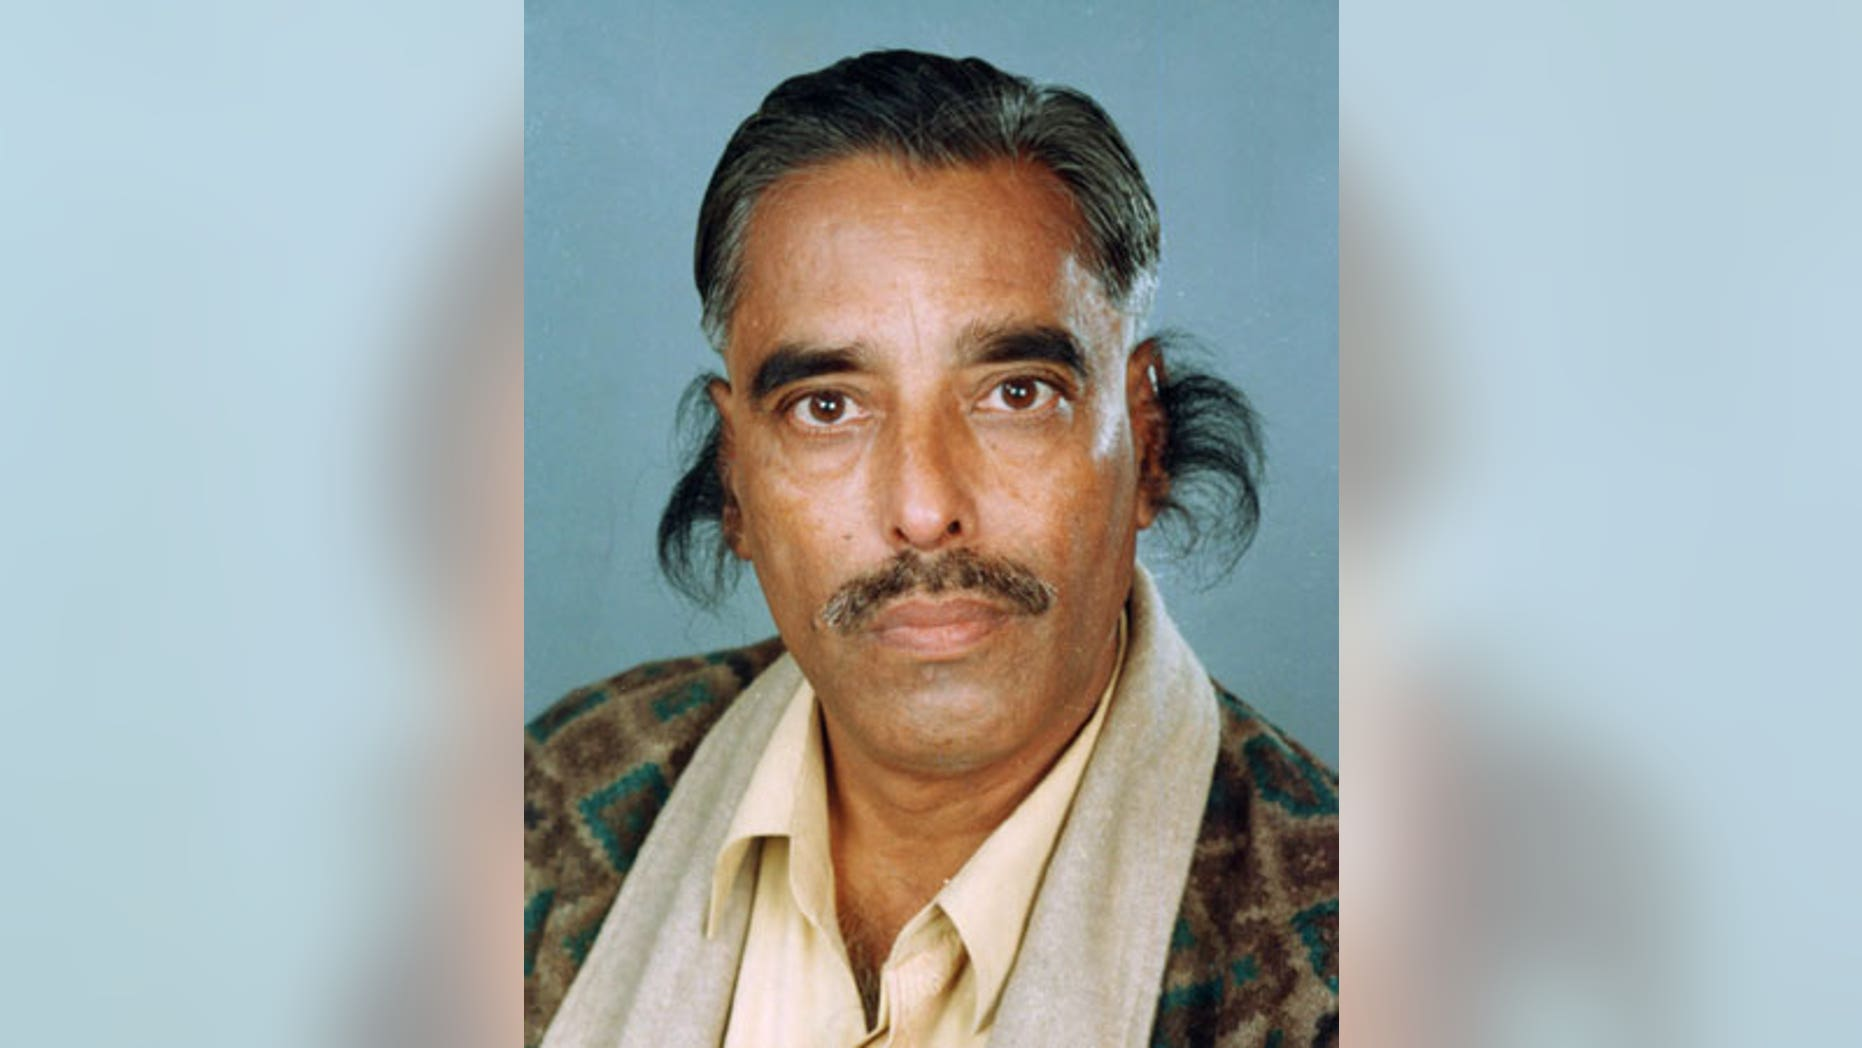 In this undated handout photograph provided by the Guinness World Records book, record holder Radhakant Bajpai is seen with his long ear hair.